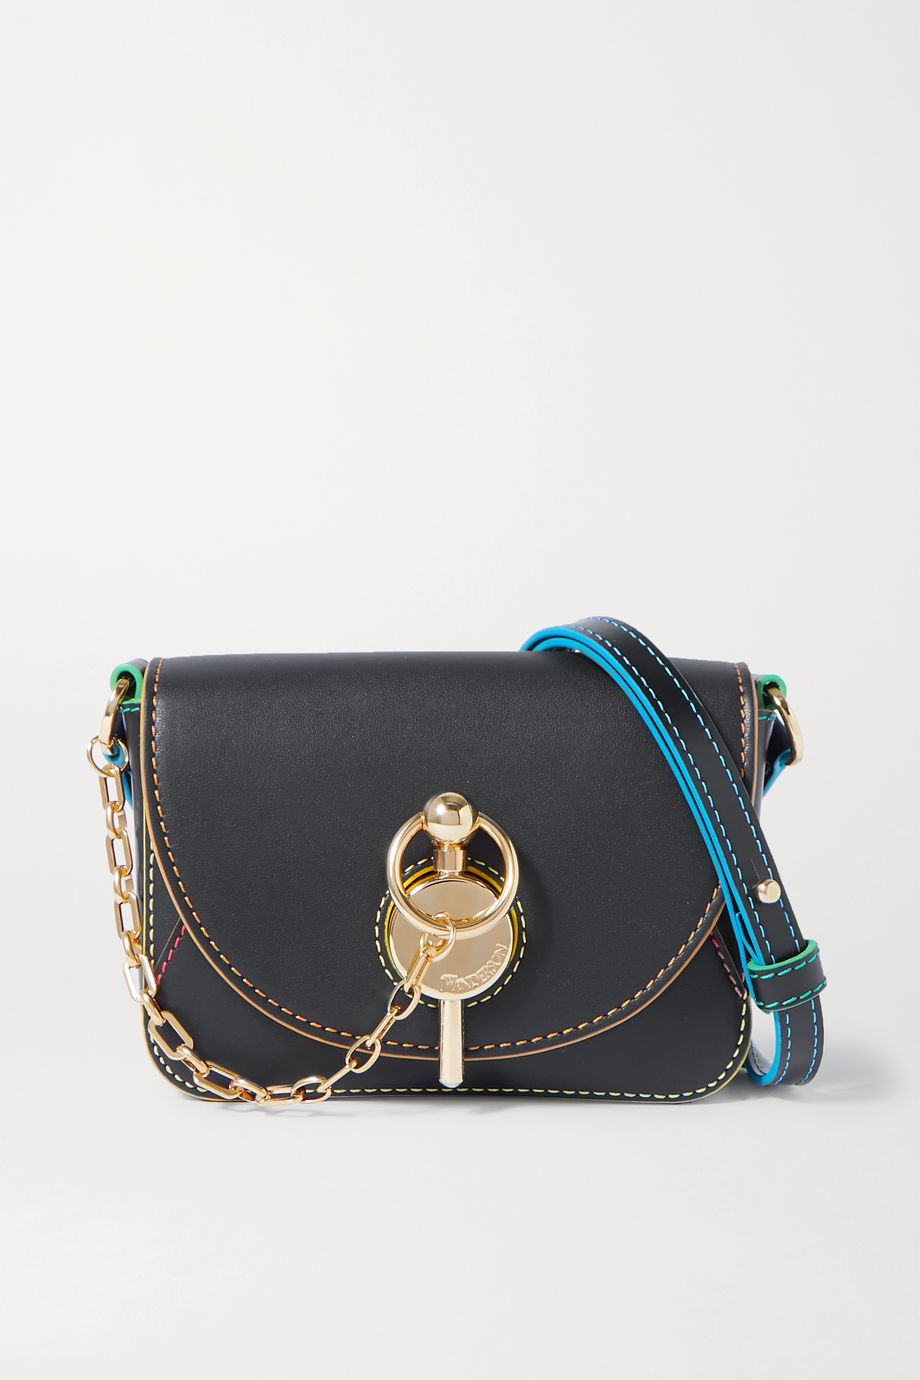 JW Anderson Keyts nano leather shoulder bag